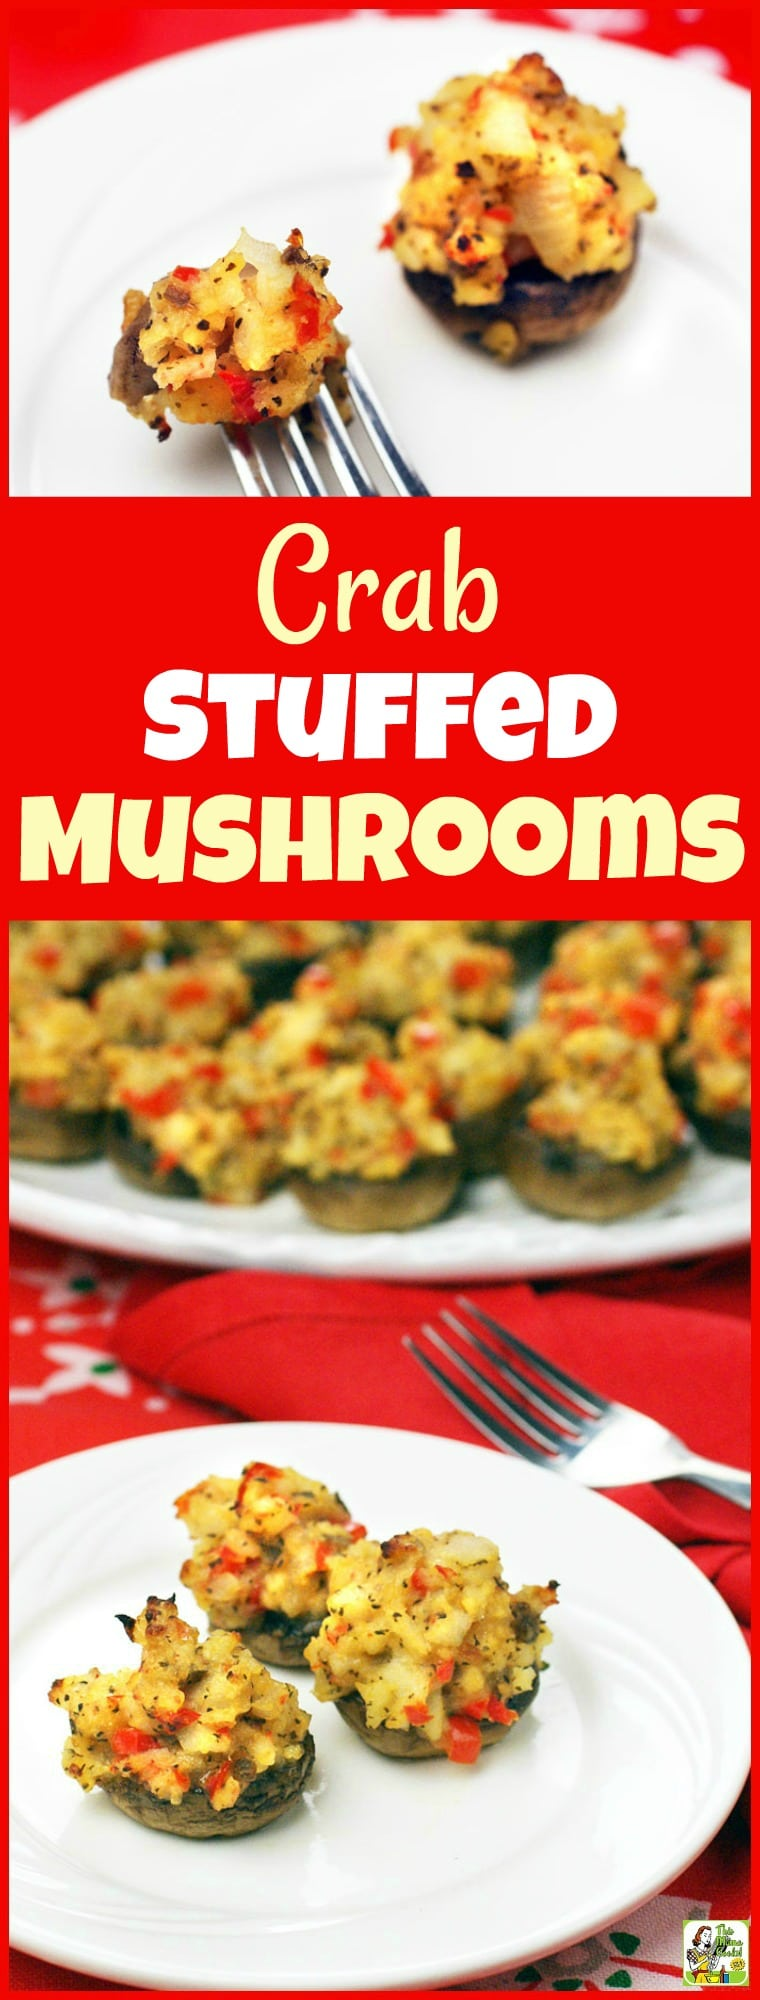 Make Crab Stuffed Mushrooms for your party! These stuffed mushroom appetizers are gluten free. Your guest will love these healthy stuffed mushrooms. #recipe #easy #recipeoftheday #healthyrecipes #glutenfree #easyrecipes #mushrooms #appetizers #appetizerseasy #crab #partyfood #entertaining #stuffedmushrooms #holidays #Christmas